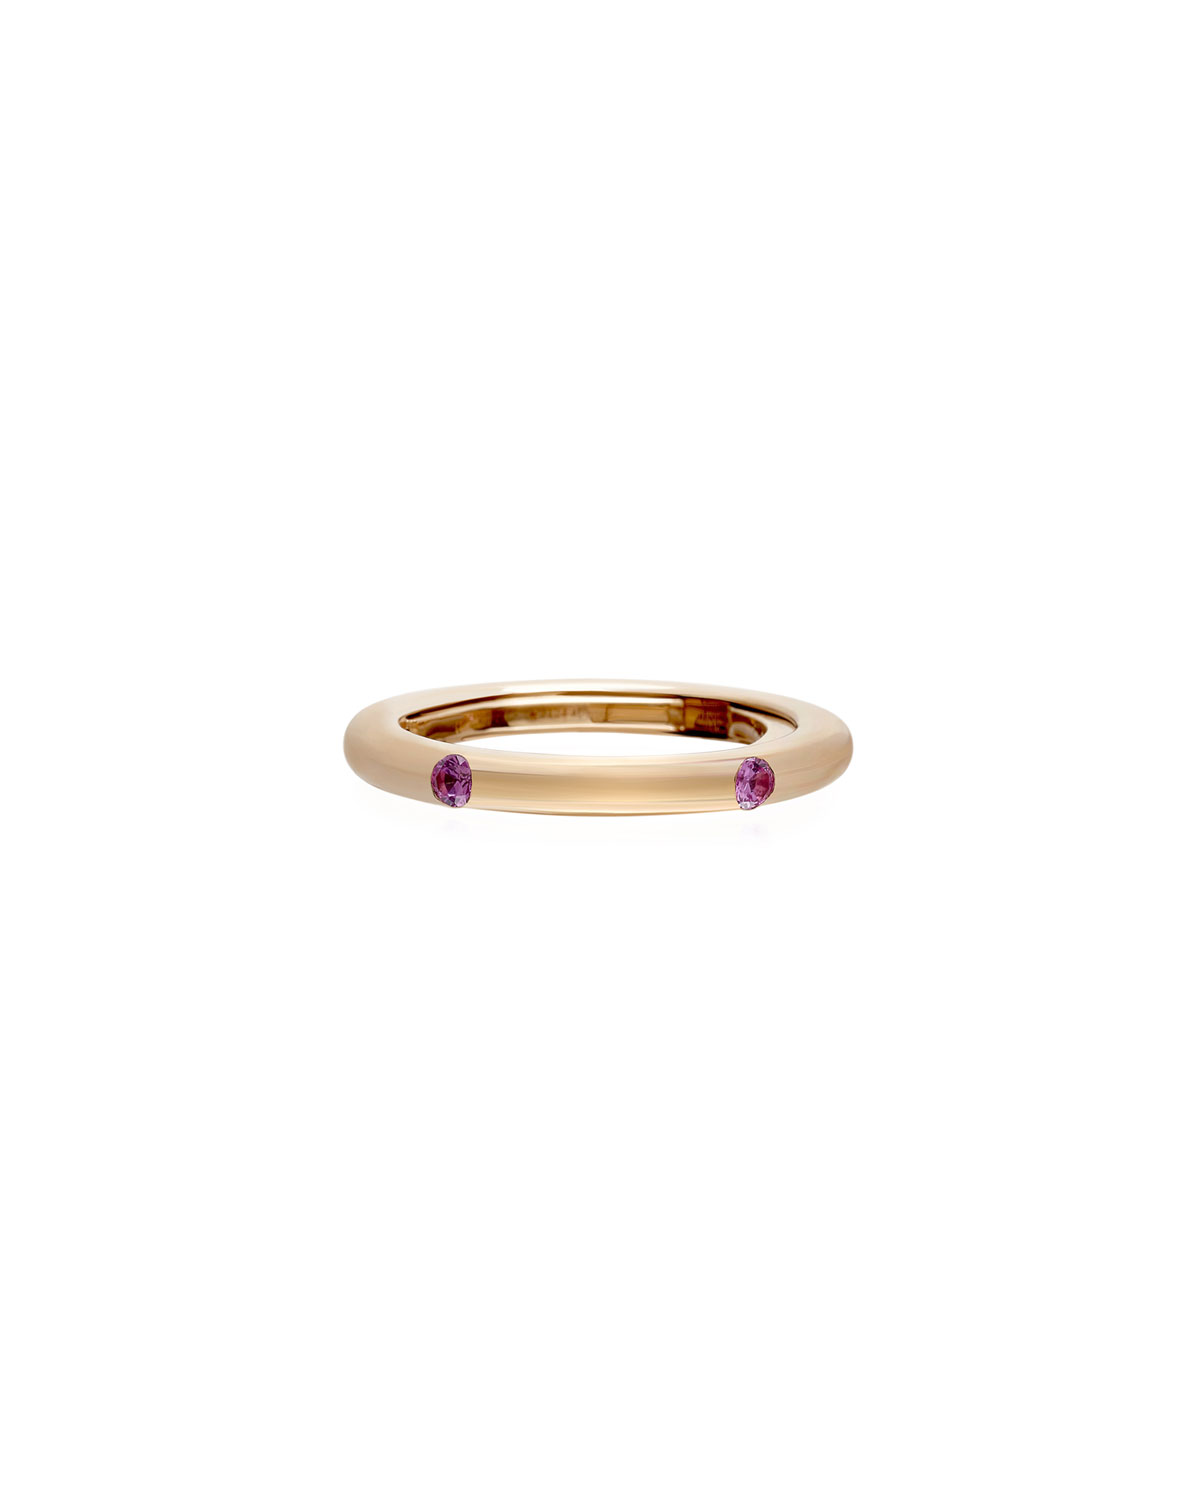 Never Ending 18k Pink Gold Pink Sapphire Ring